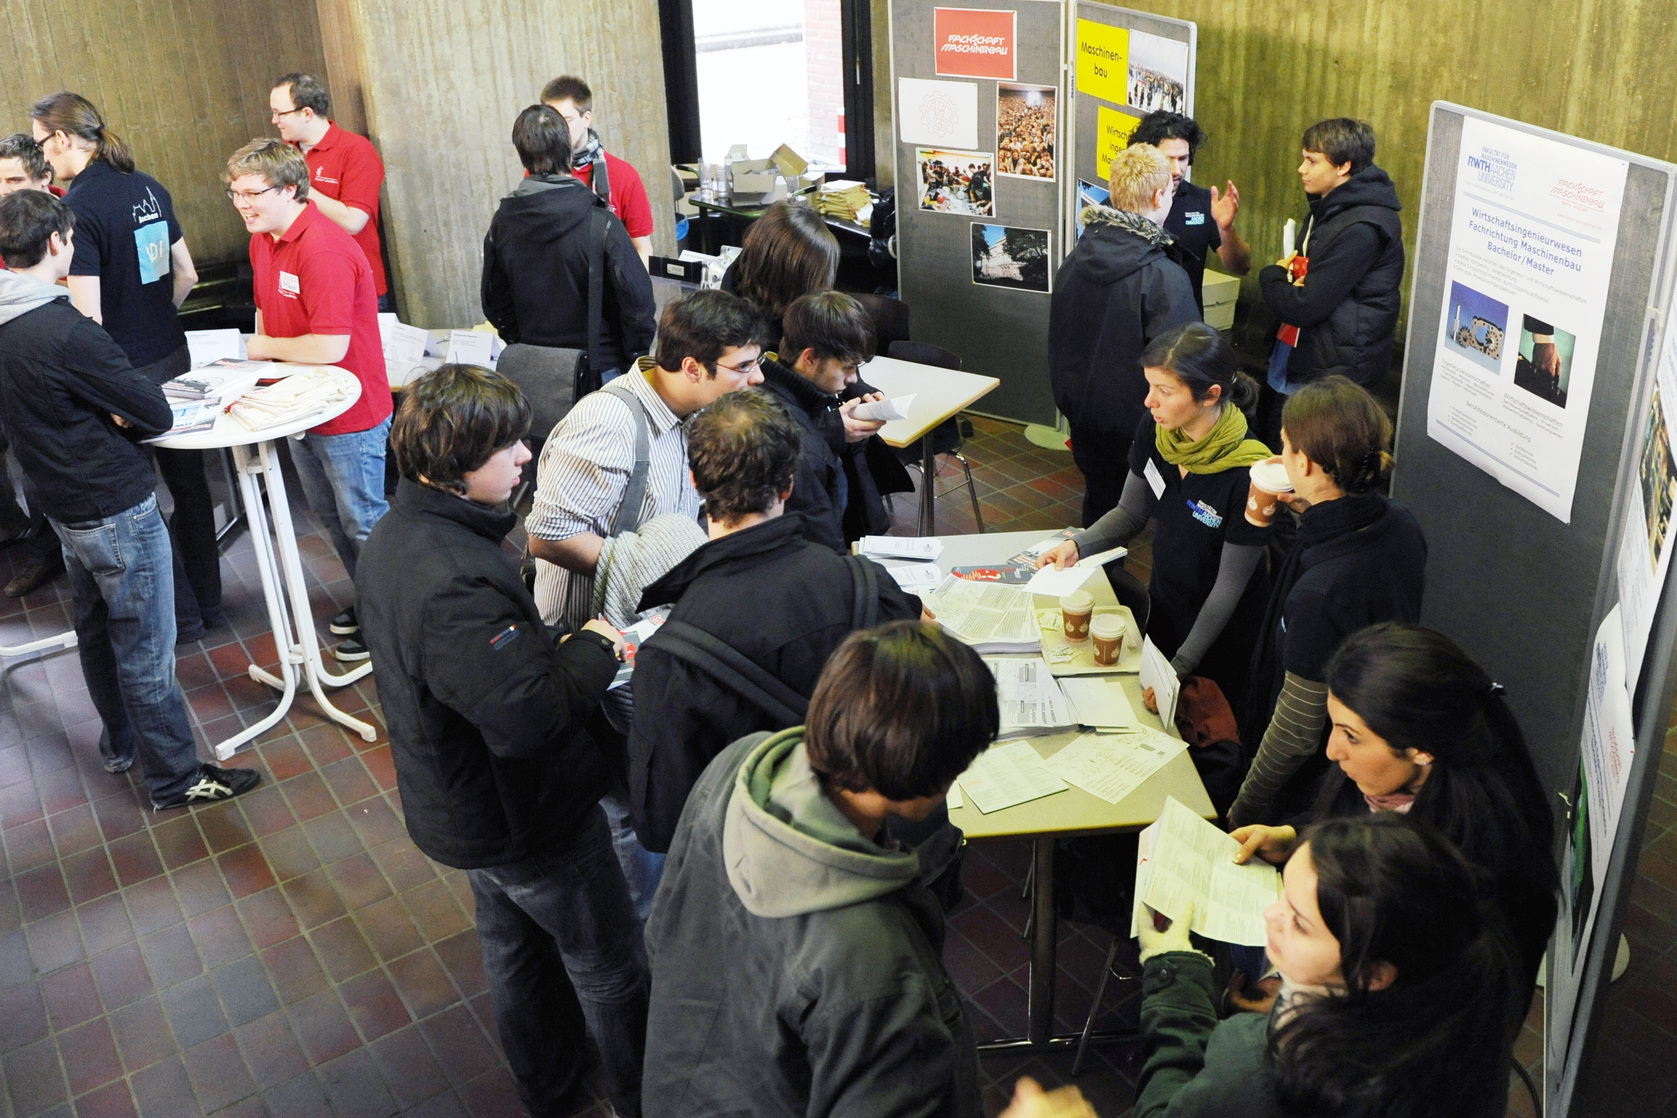 Students in front of info point